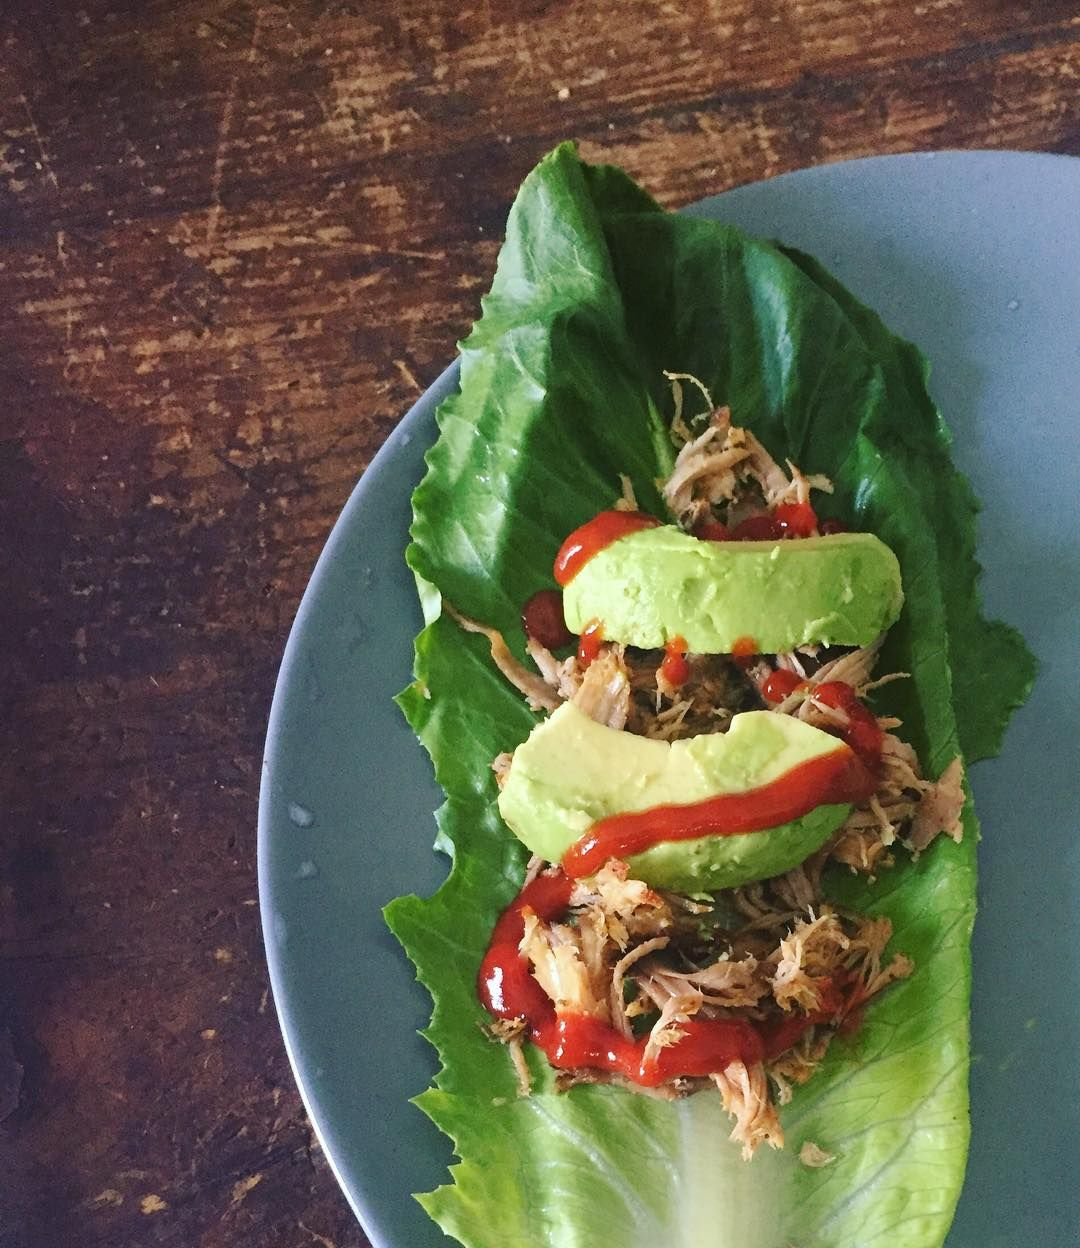 Carnitas by @mrpotatoes  lettuce wraps by me. #keto #healthyeating #paleo #healthylife #healthy #wholefood